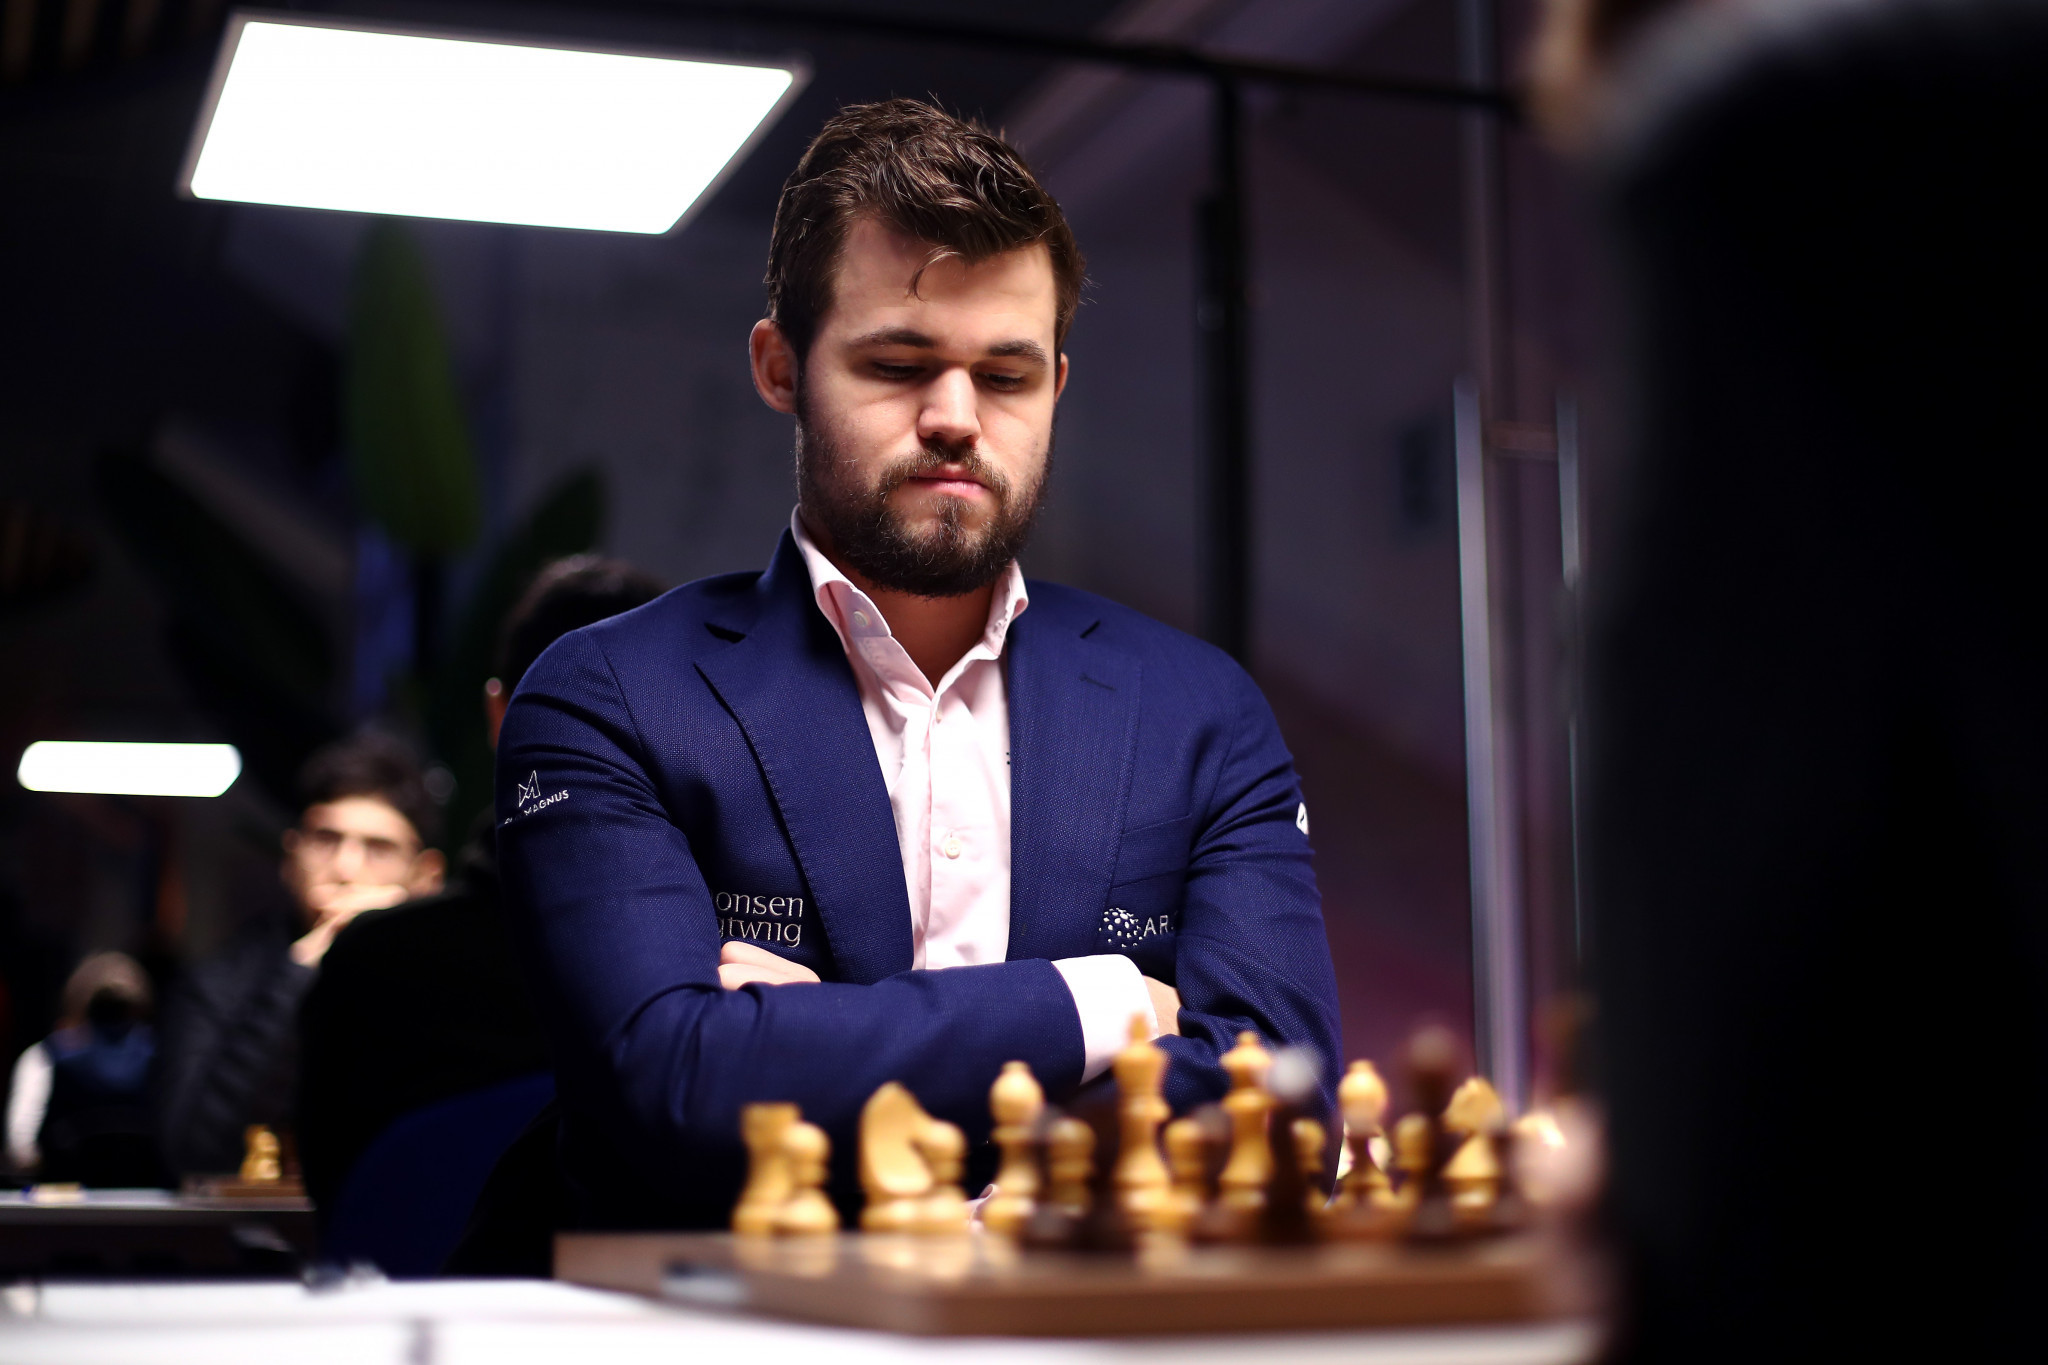 World chess champion Carlsen is highest earning esports player of 2020